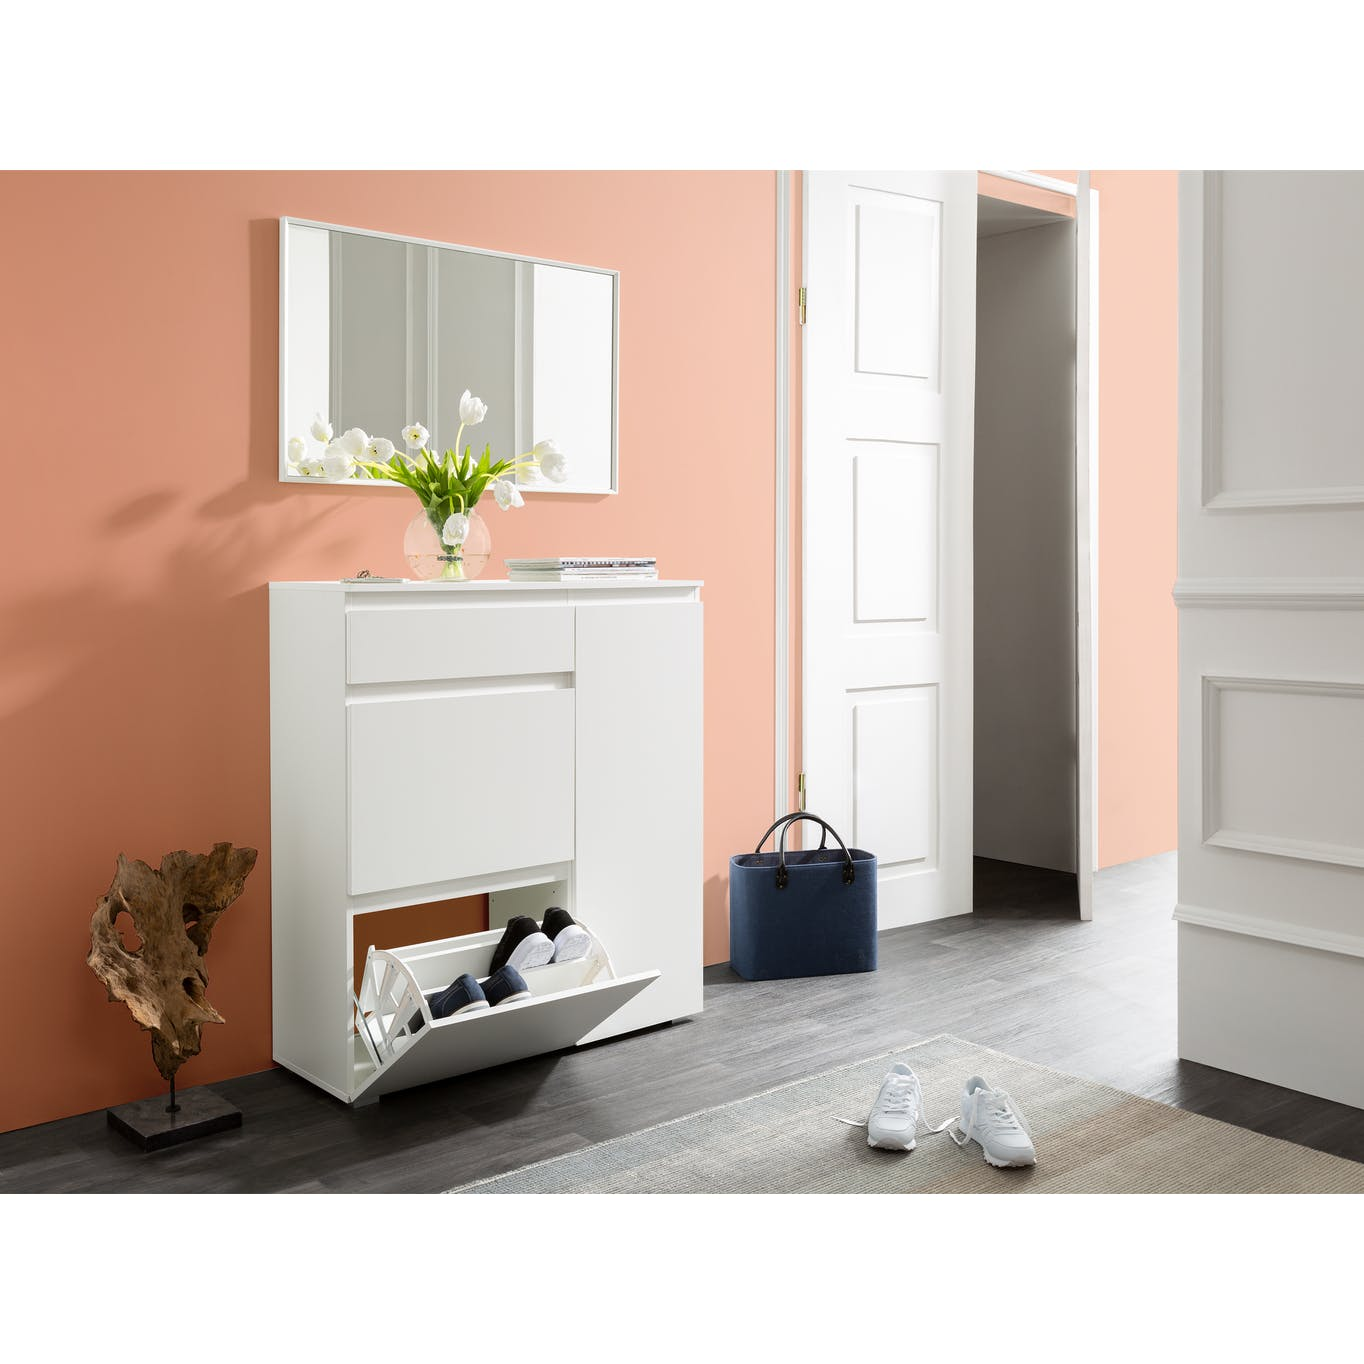 white wooden shoe cabinet placed at entryway of home